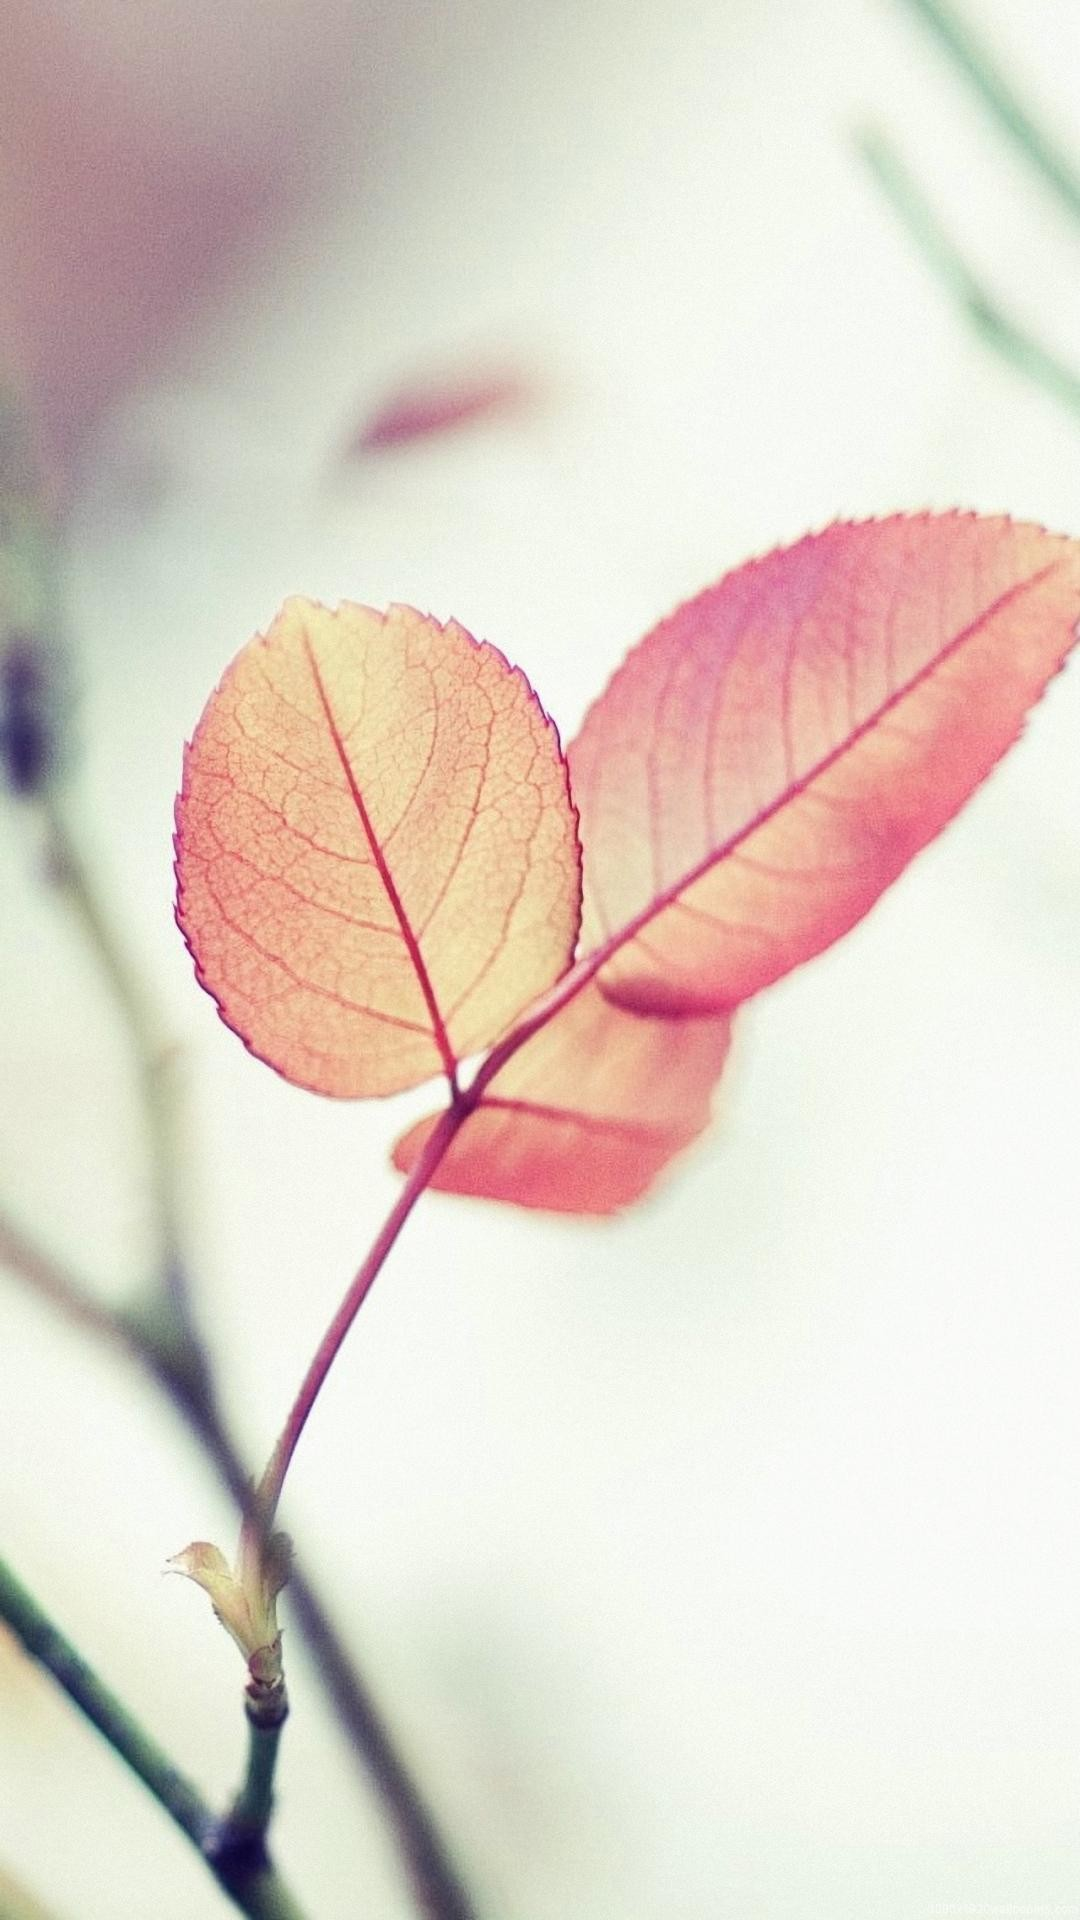 wallpaper.wiki-Cool-Leaf-Pink-Iphone-Wallpaper-PIC-